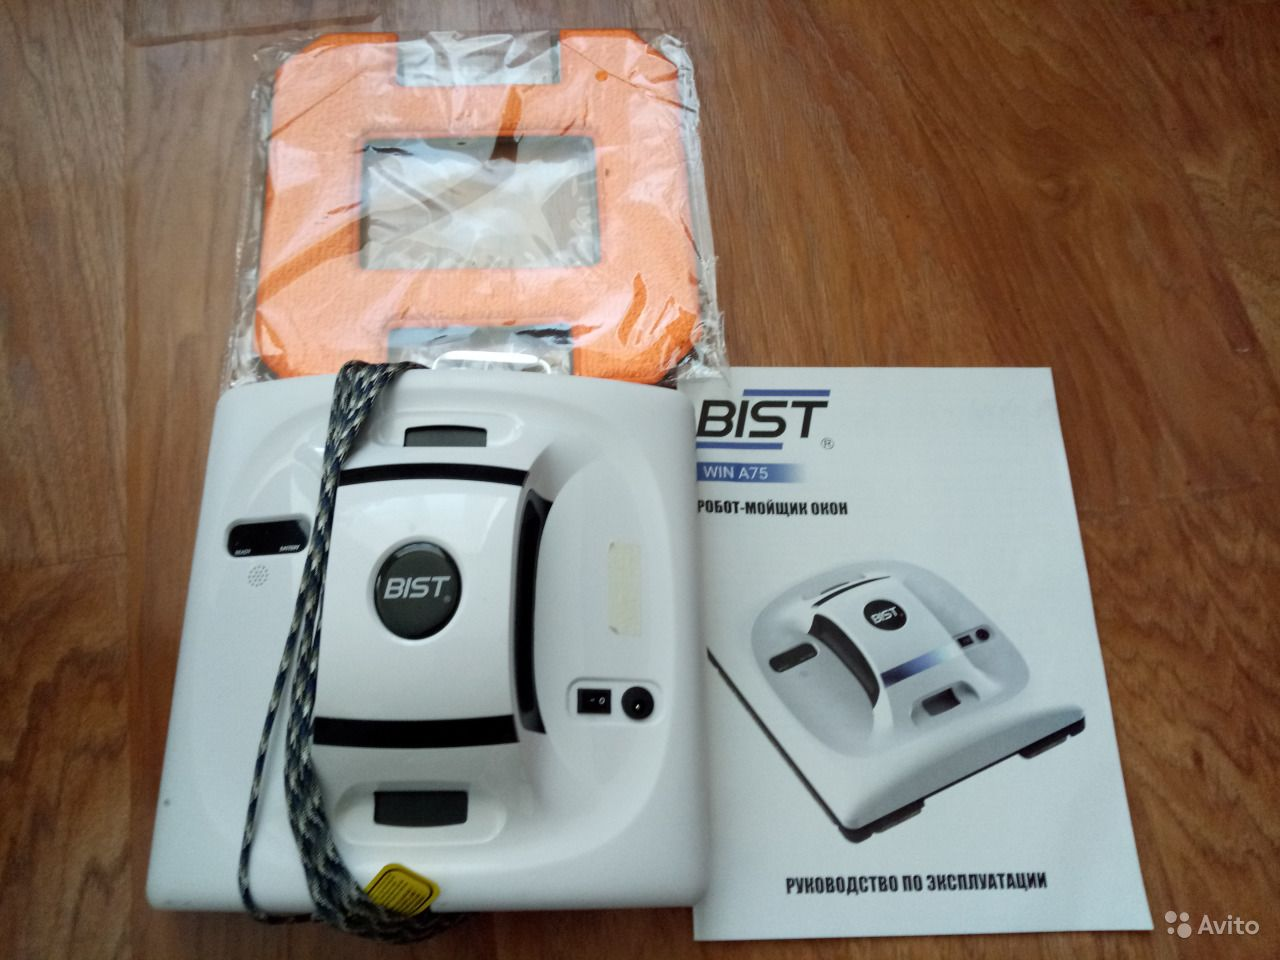 Bist Win A75 - a robot that will wash windows, mirrors and glass for you